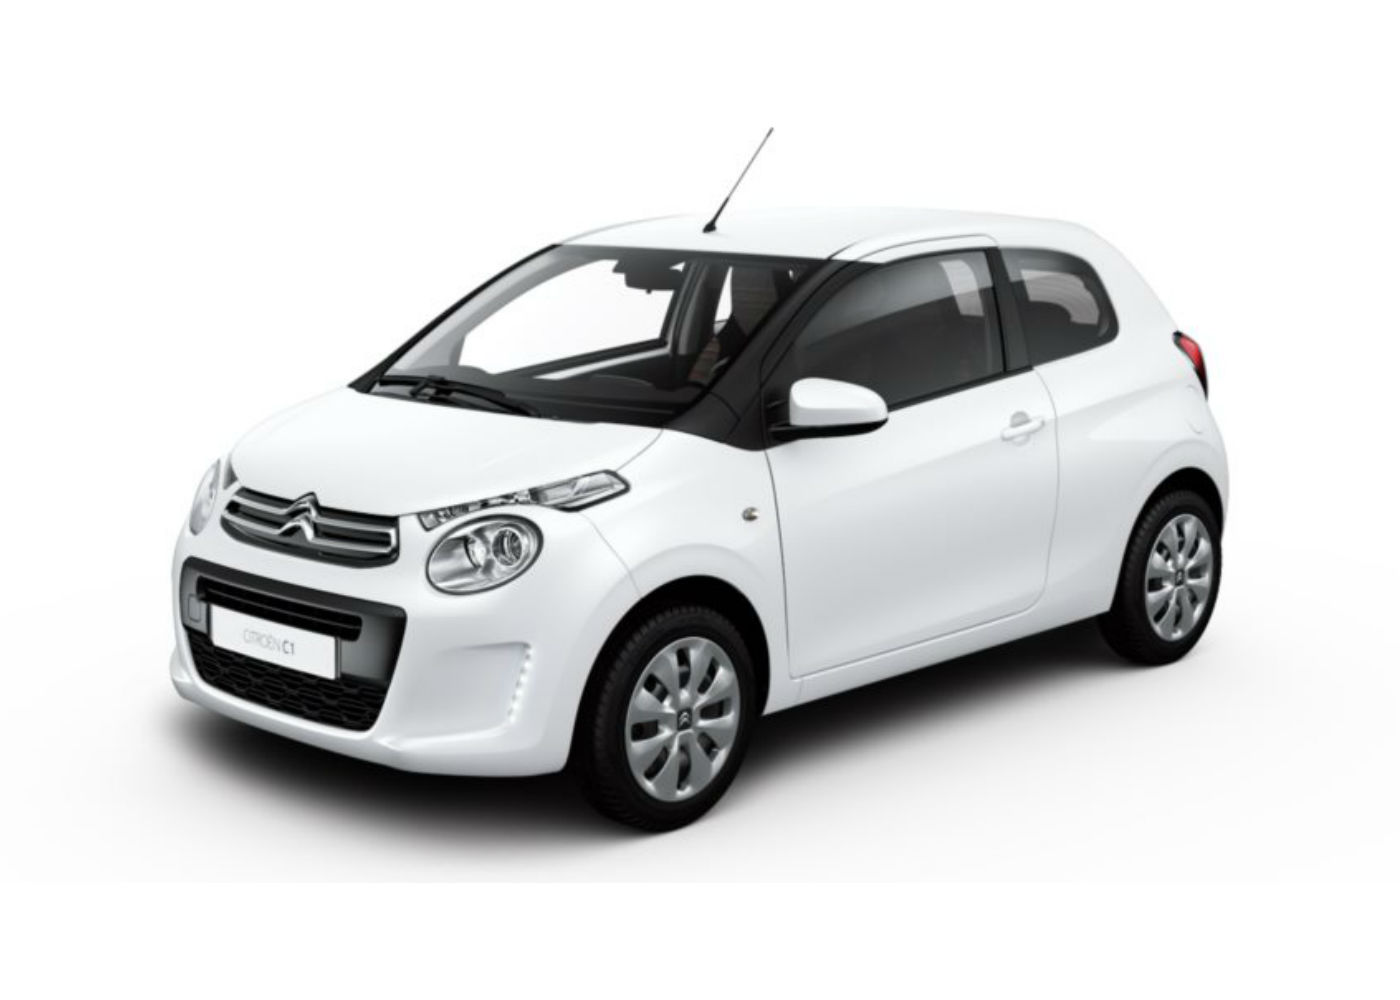 CITROEN C1 1.0 VTi 72 s&s 3 porte Feel Polar White Km 0